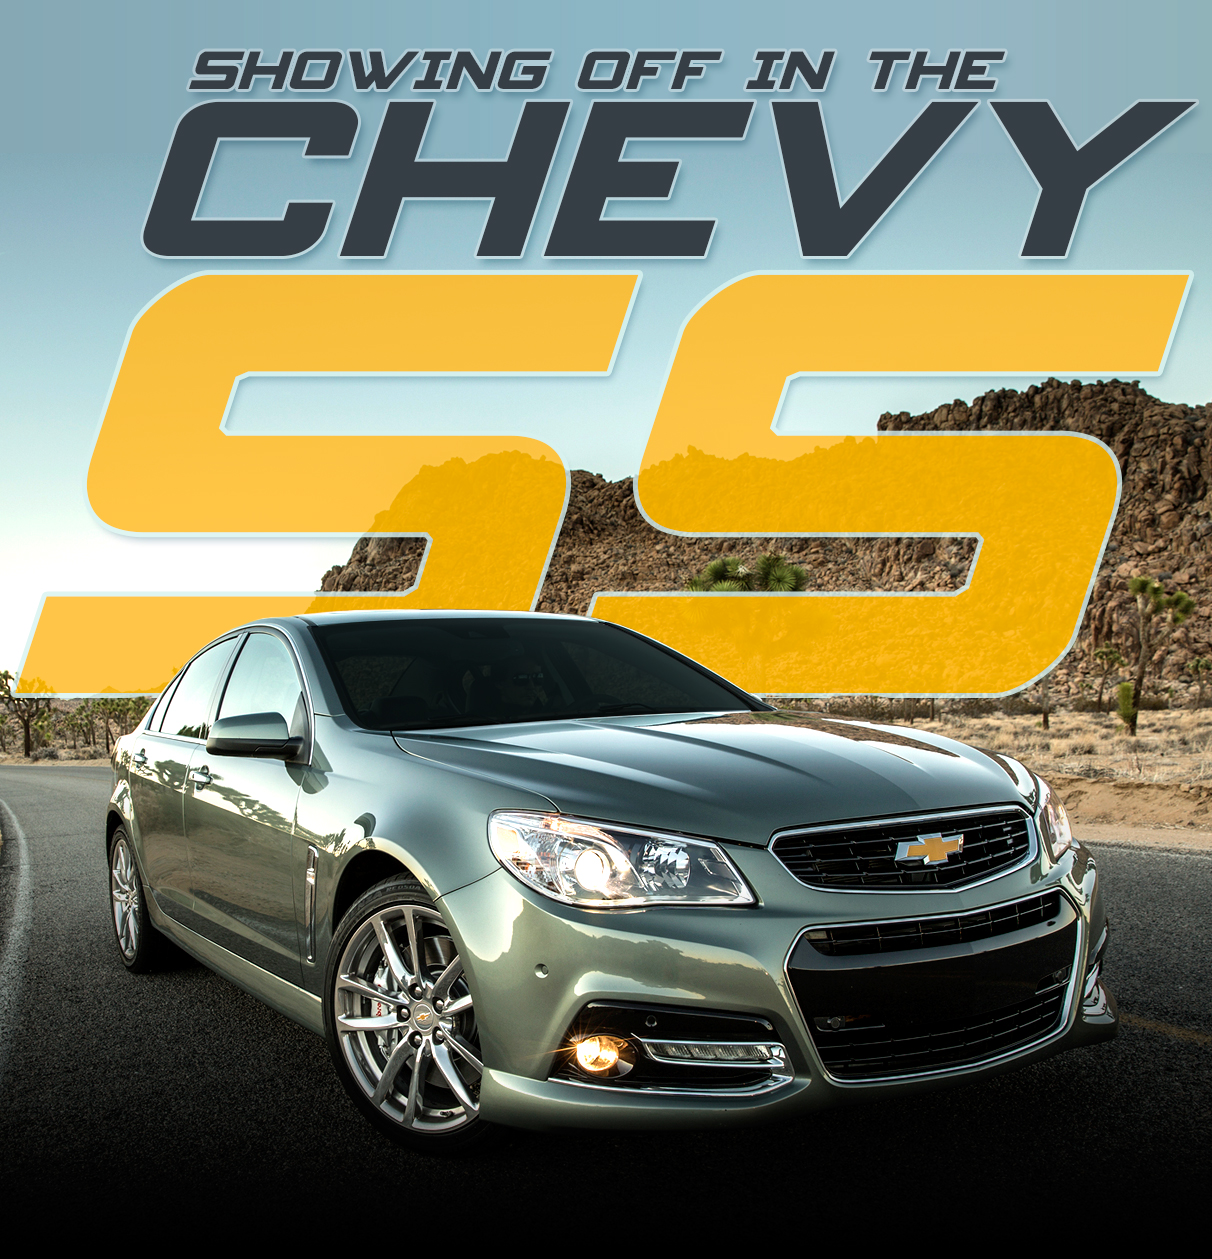 chevy-ss-banner